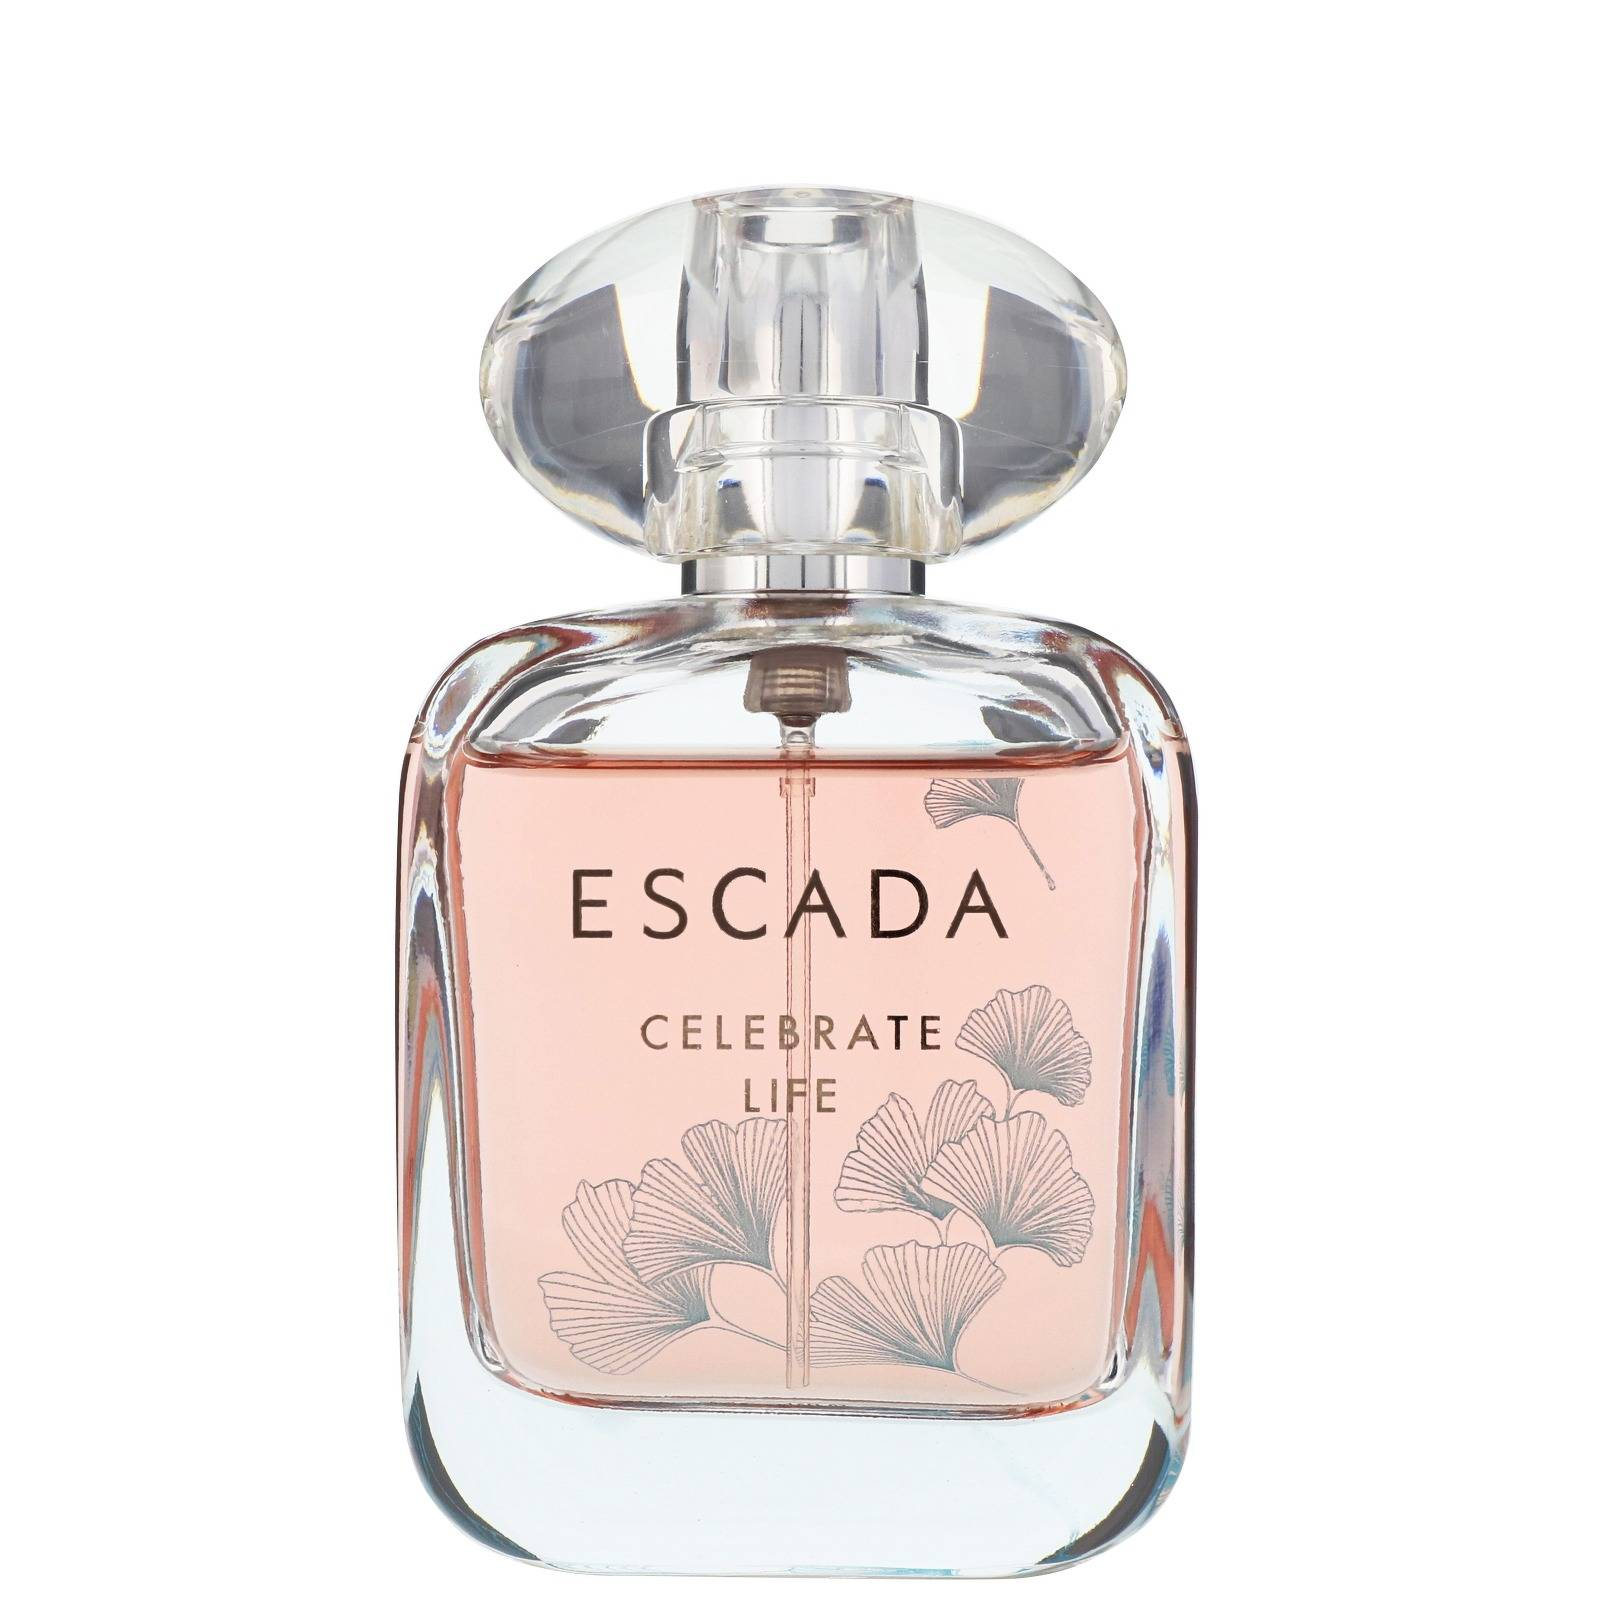 Visualizza prodotto:Escada Celebrate Life 50ml Eau de Parfum Spray